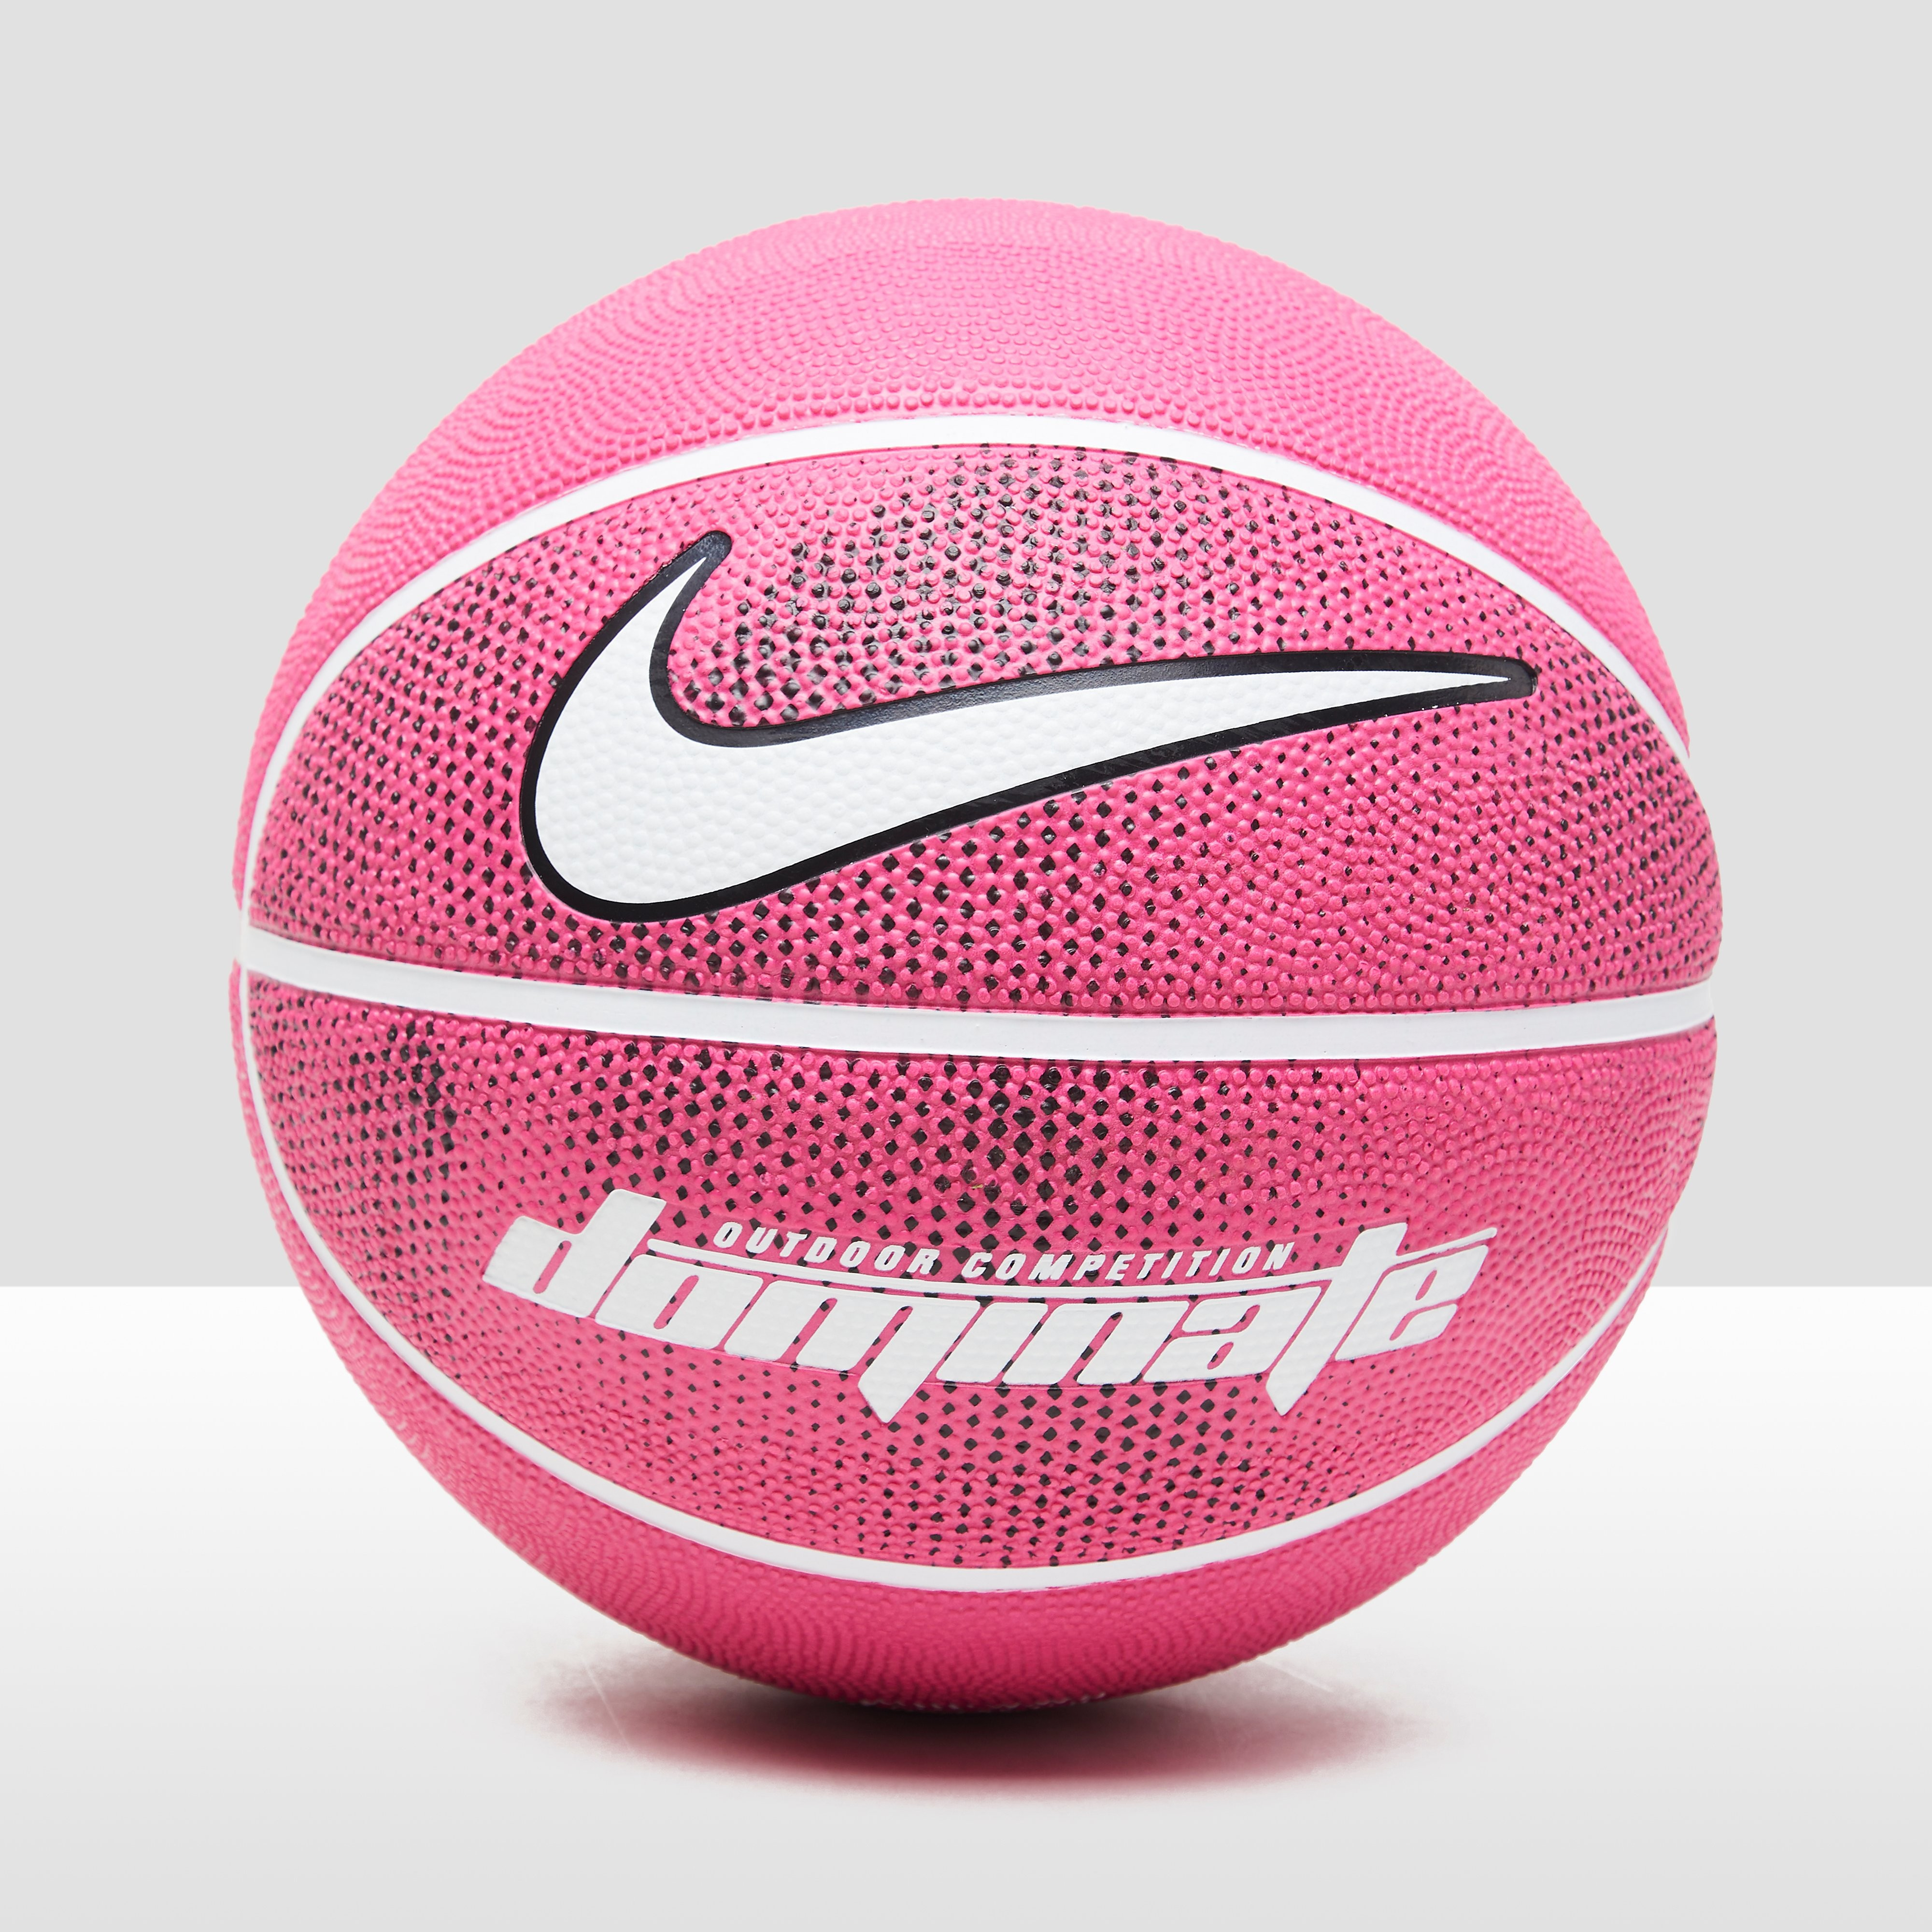 NIKE DOMINATE 8P BASKETBAL ROZE/WIT